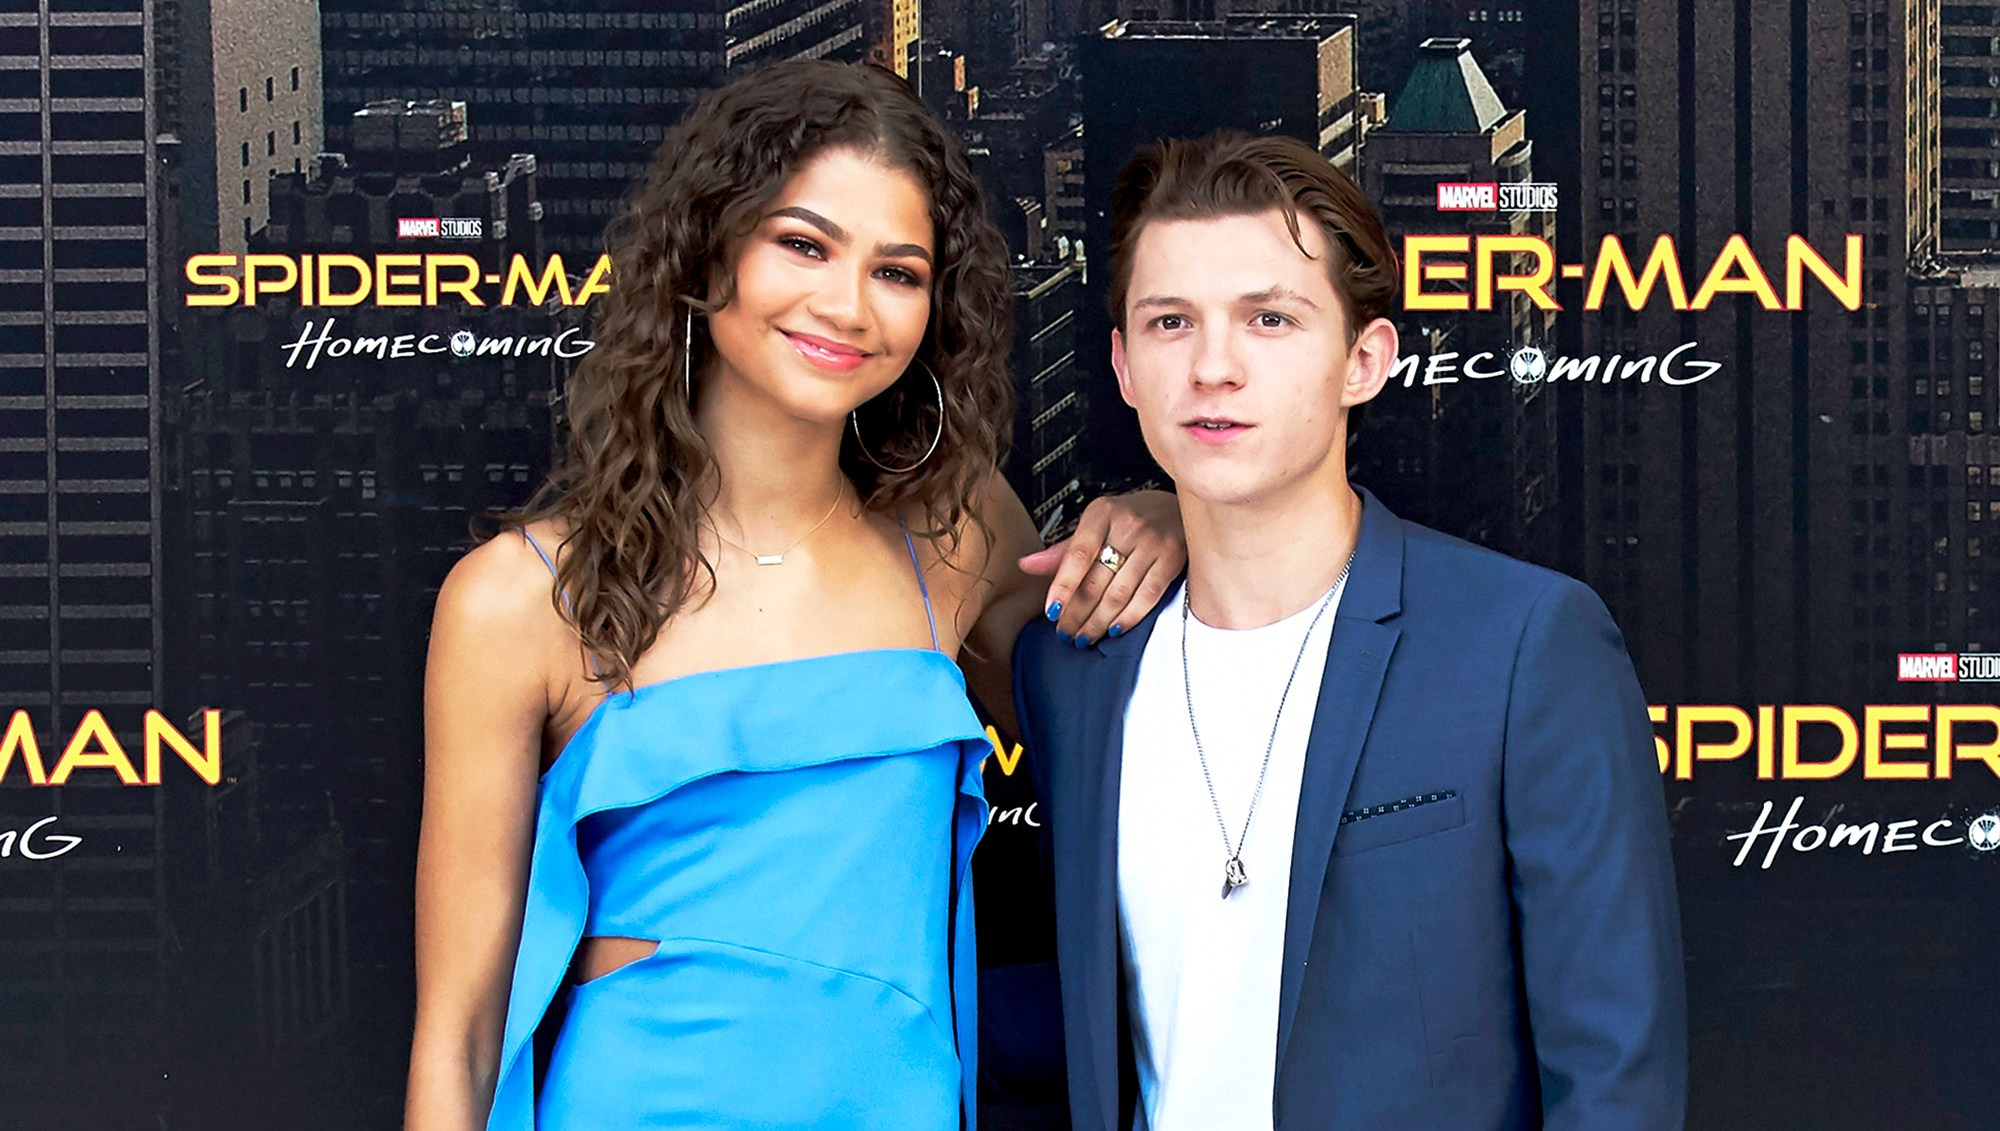 Zendaya and Tom Holland attend 'Spider-Man: Homecoming' 2017 photocall at the Villamagna Hotel in Madrid, Spain.